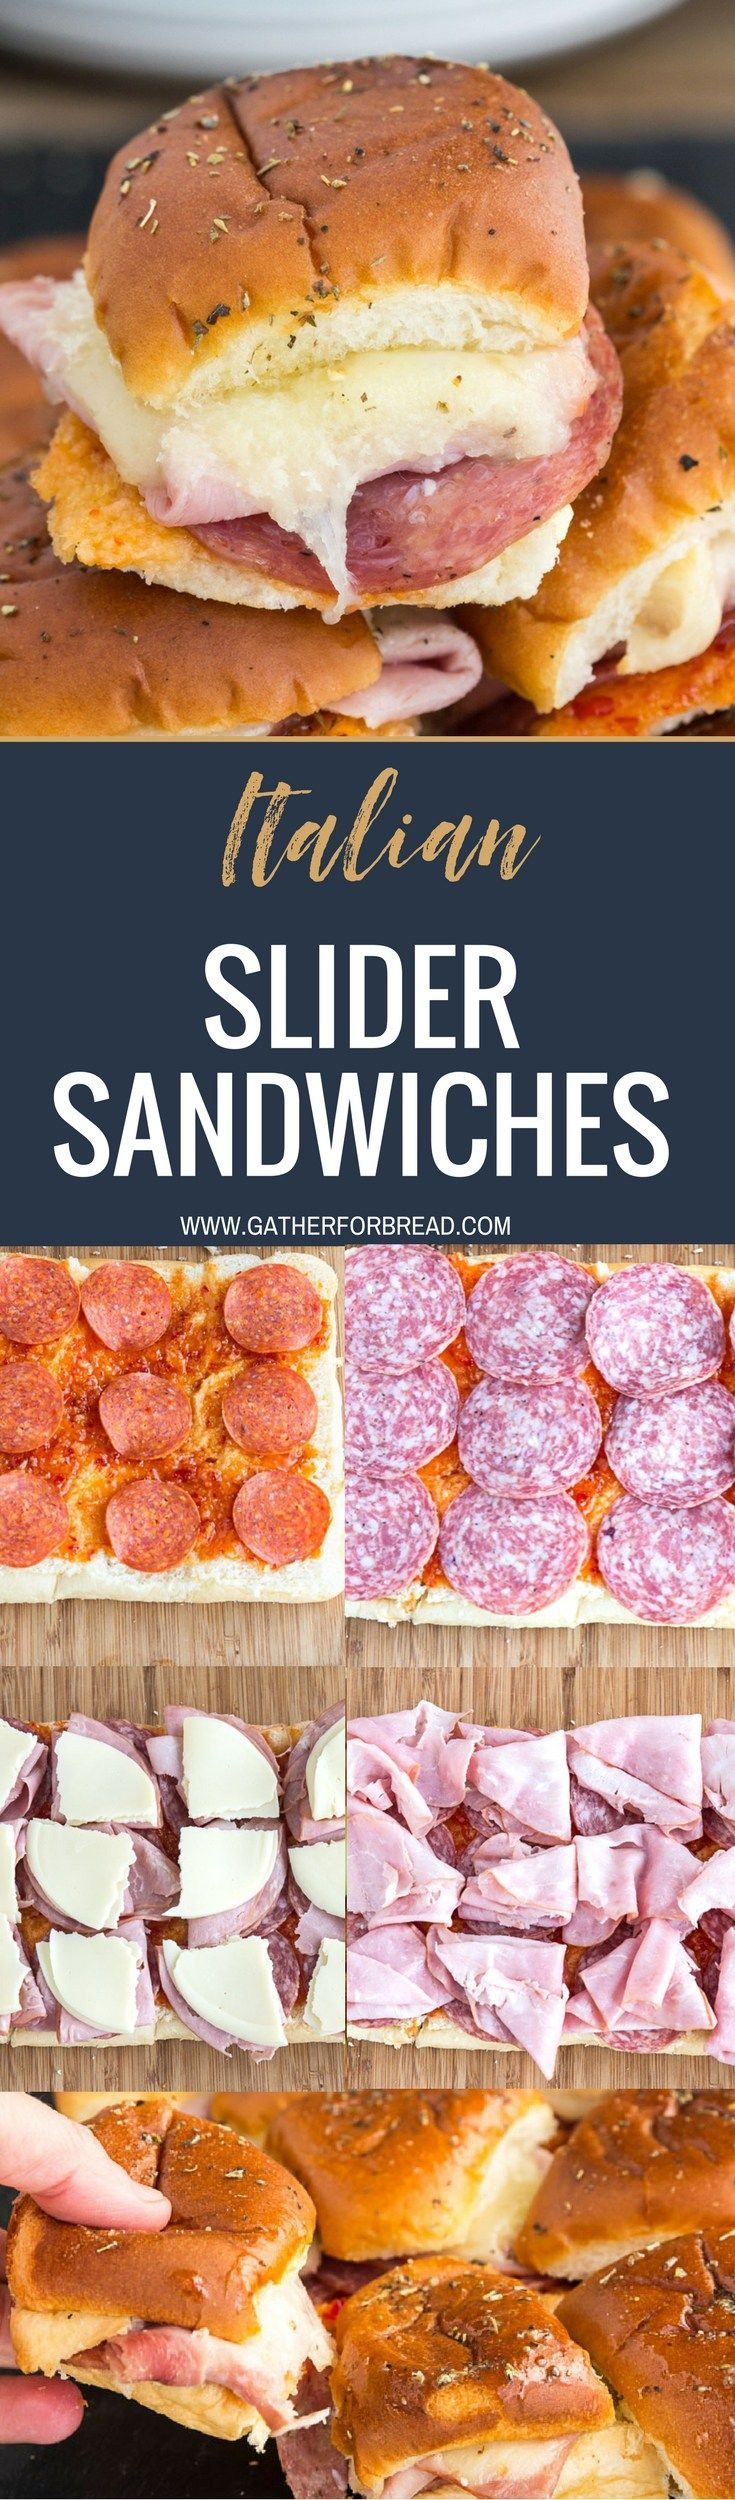 Italian Slider Sandwiches - Sliders stuffed with Italian meats, ham, salami, pepperoni, cheese, baked to perfection. Great appetizer for parties, gatherings! #slider #sandwiches #gameday #pepperoni #Italian